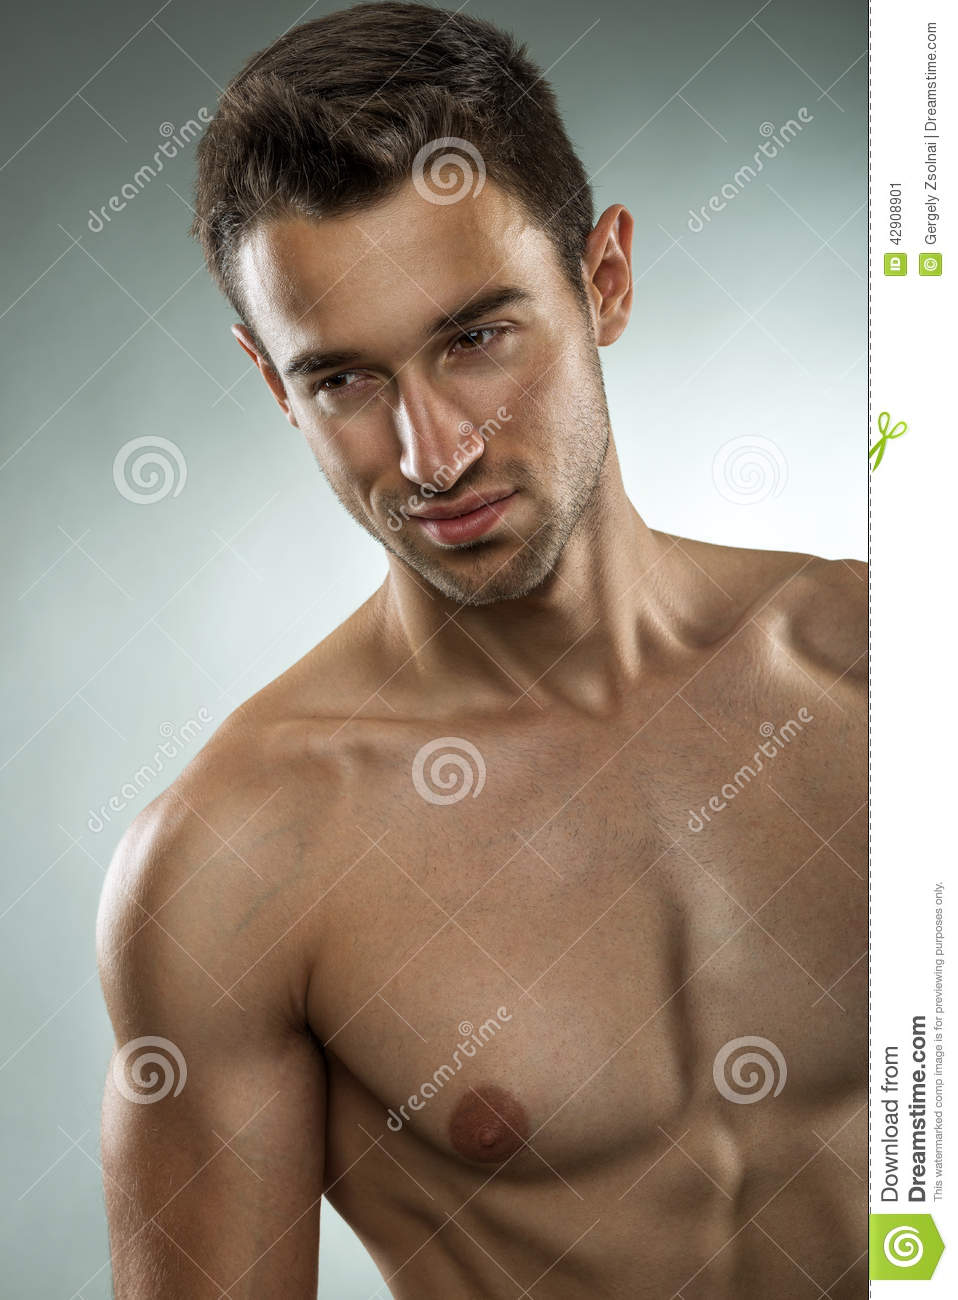 Handsome Muscular Man Posing Half Naked, Close-Up Photo -6411